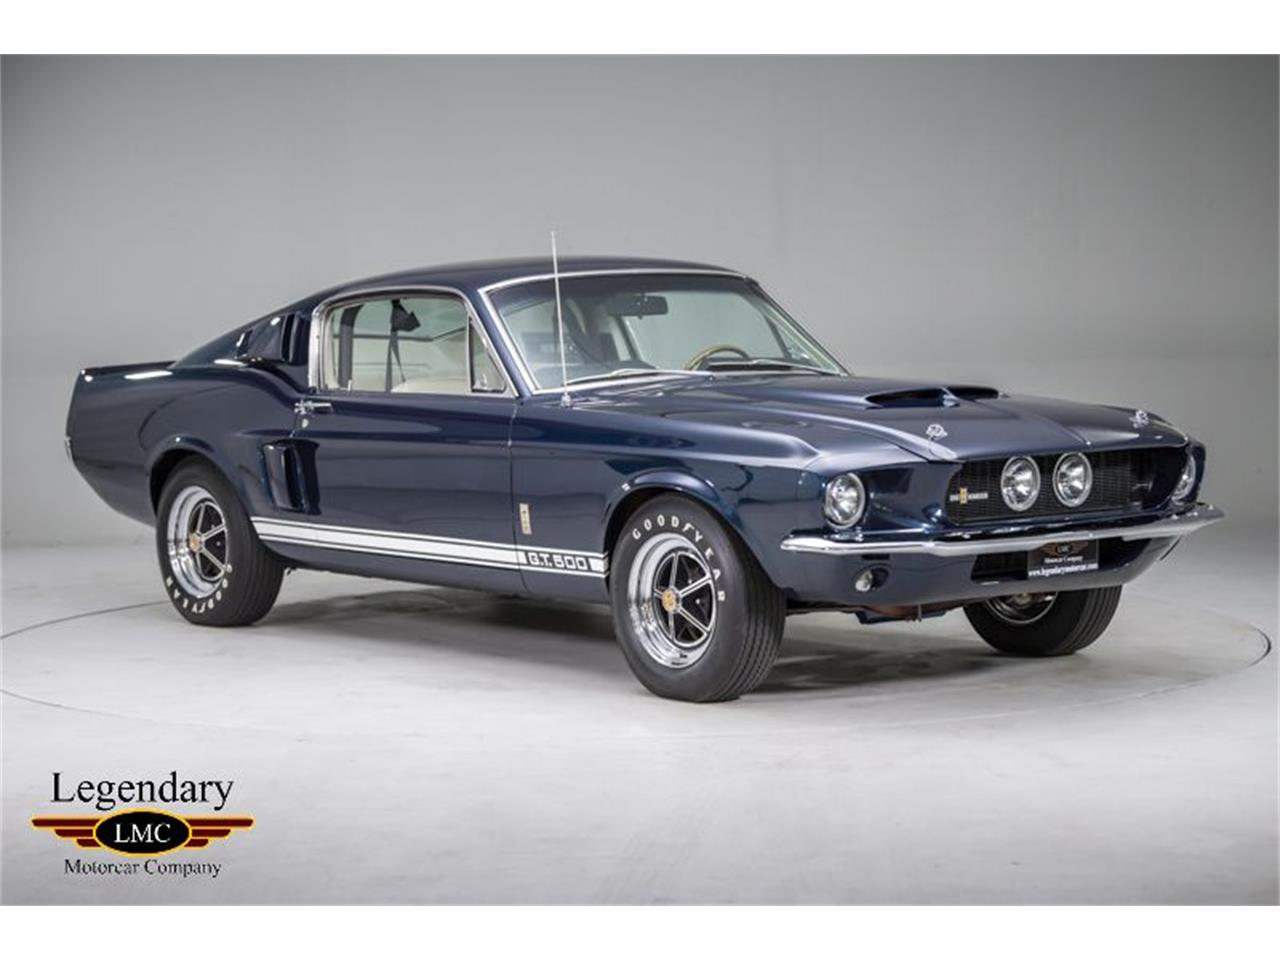 Large picture of 67 gt500 nvn2